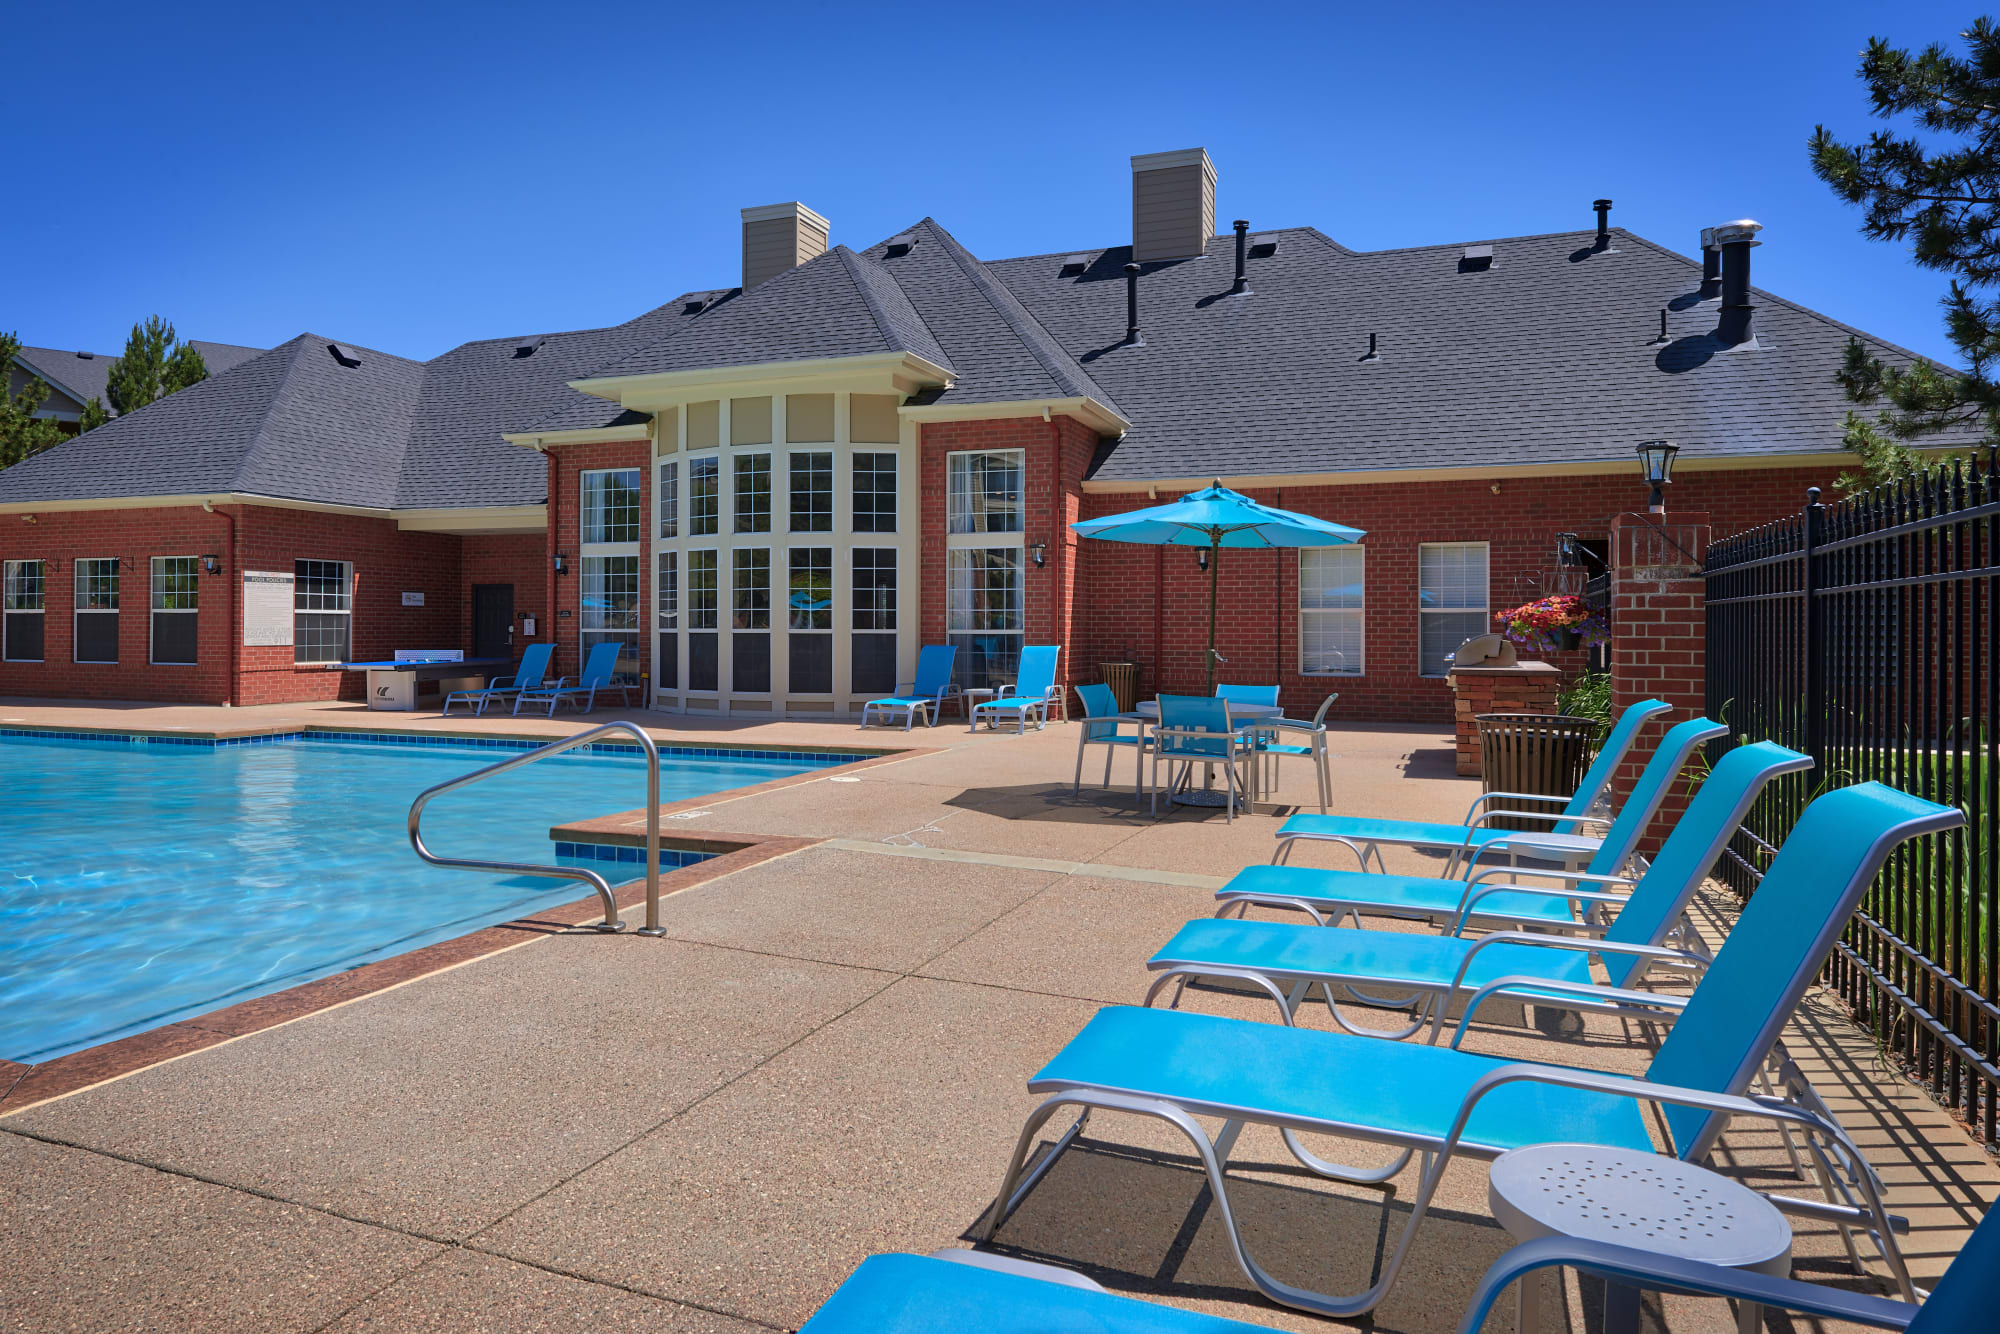 Poolside lounge chairs at Skyecrest Apartments in Lakewood, Colorado